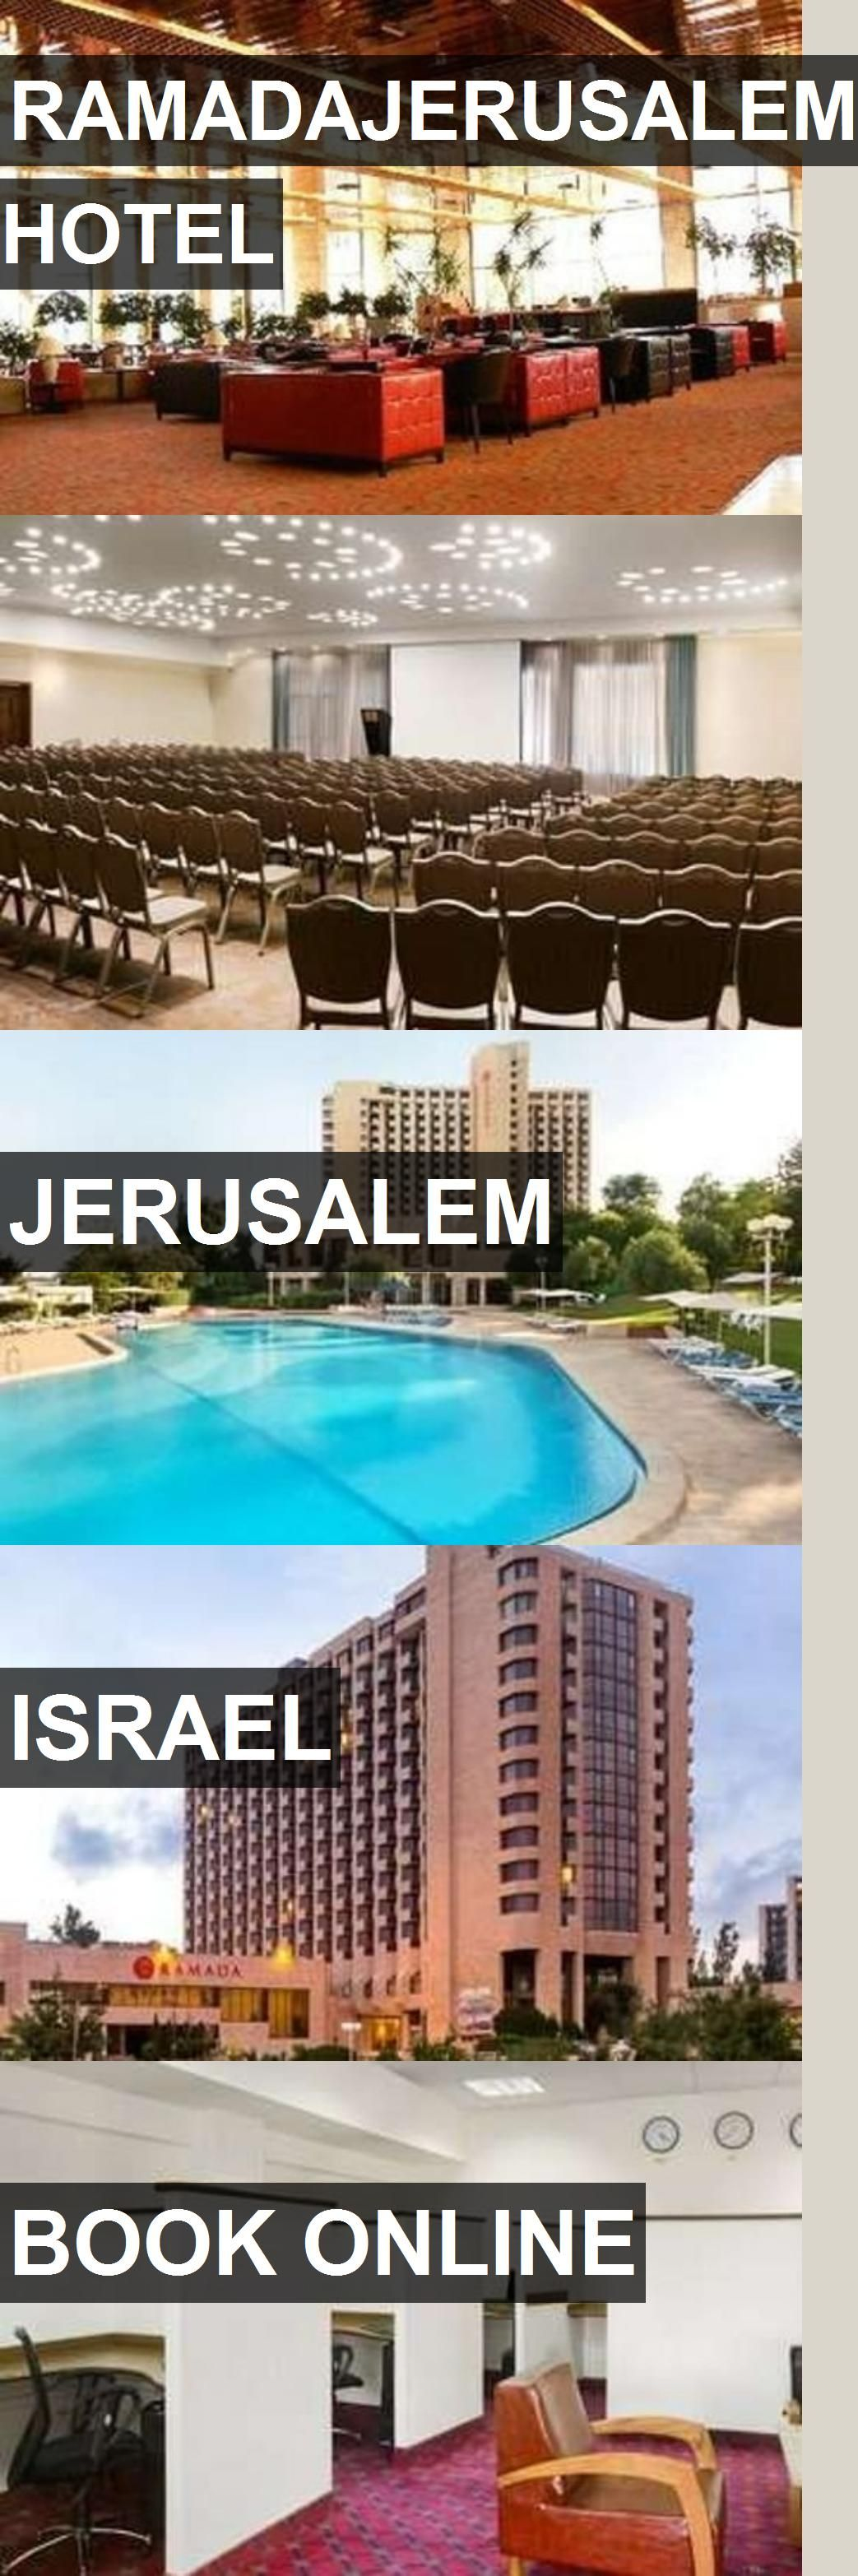 Hotel RAMADAJERUSALEM HOTEL in Jerusalem, Israel. For more information, photos, reviews and best prices please follow the link. #Israel #Jerusalem #RAMADAJERUSALEMHOTEL #hotel #travel #vacation